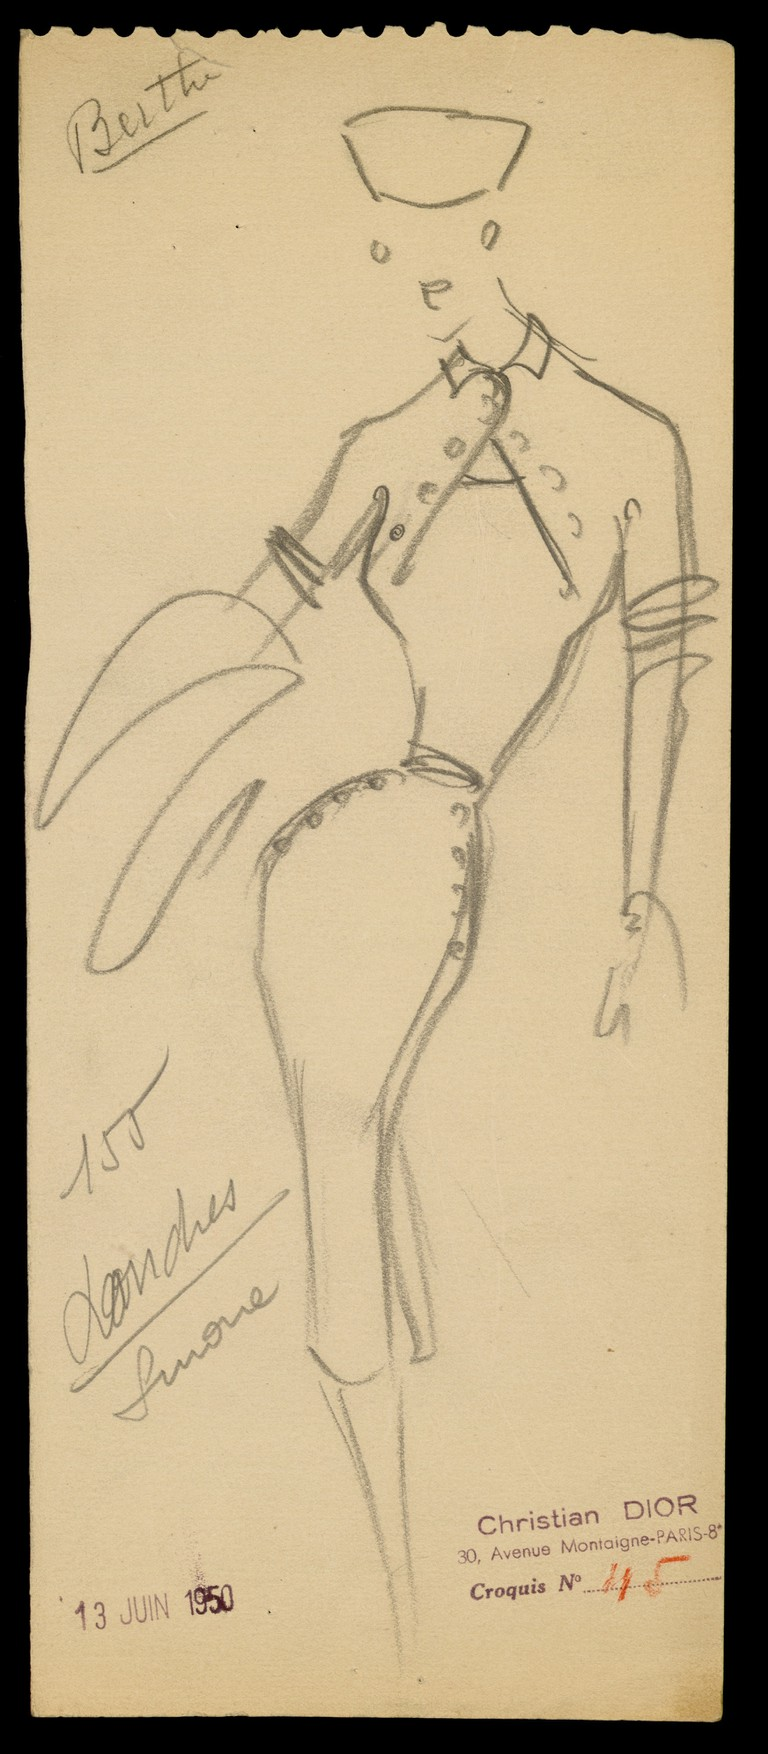 Sketch by Christian Dior for model Londres, autumn/winter 1950 Haute Couture collection